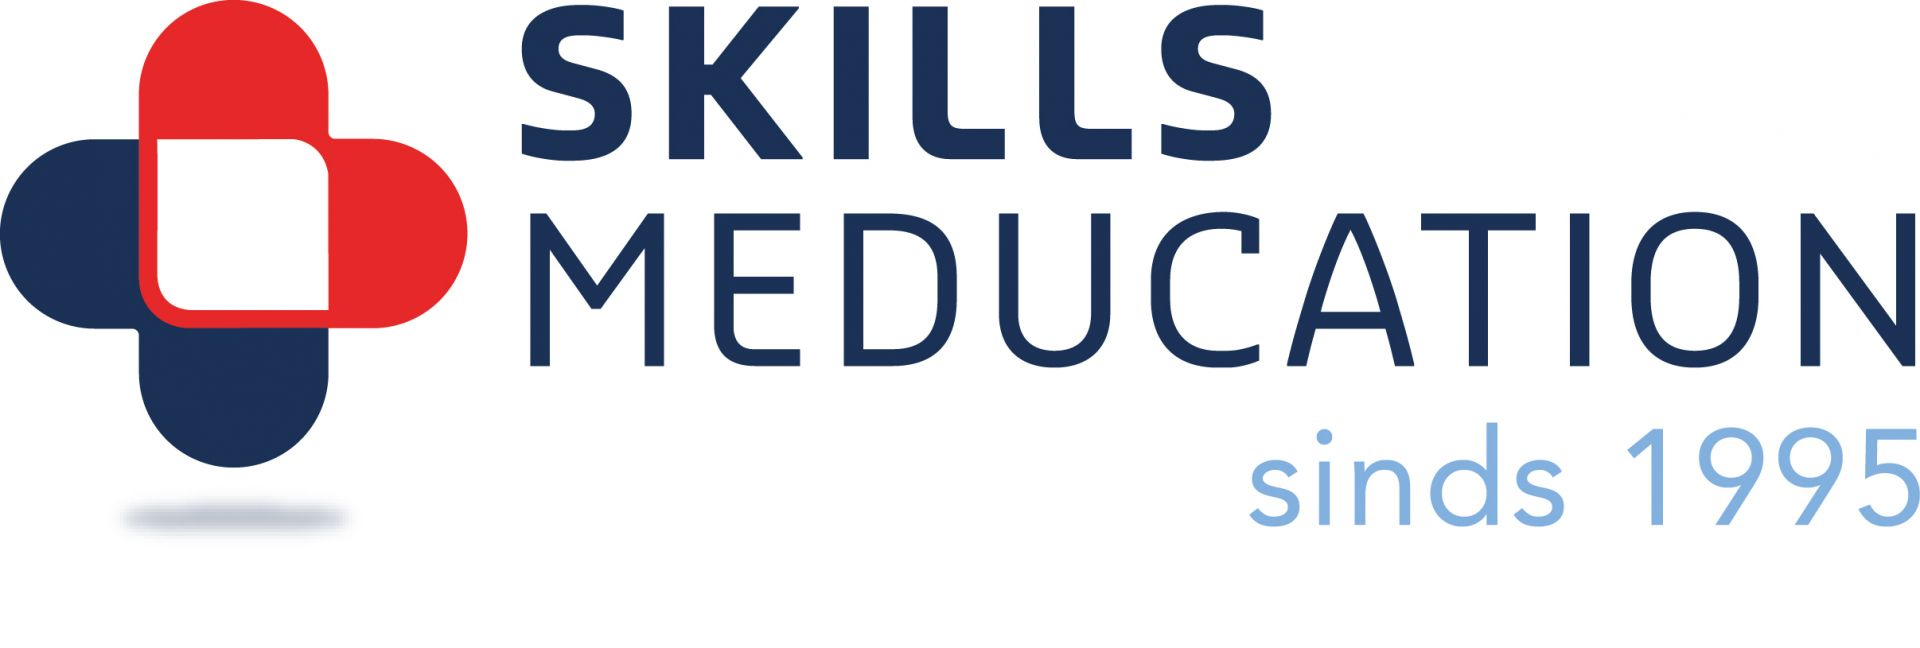 Skills Meducation